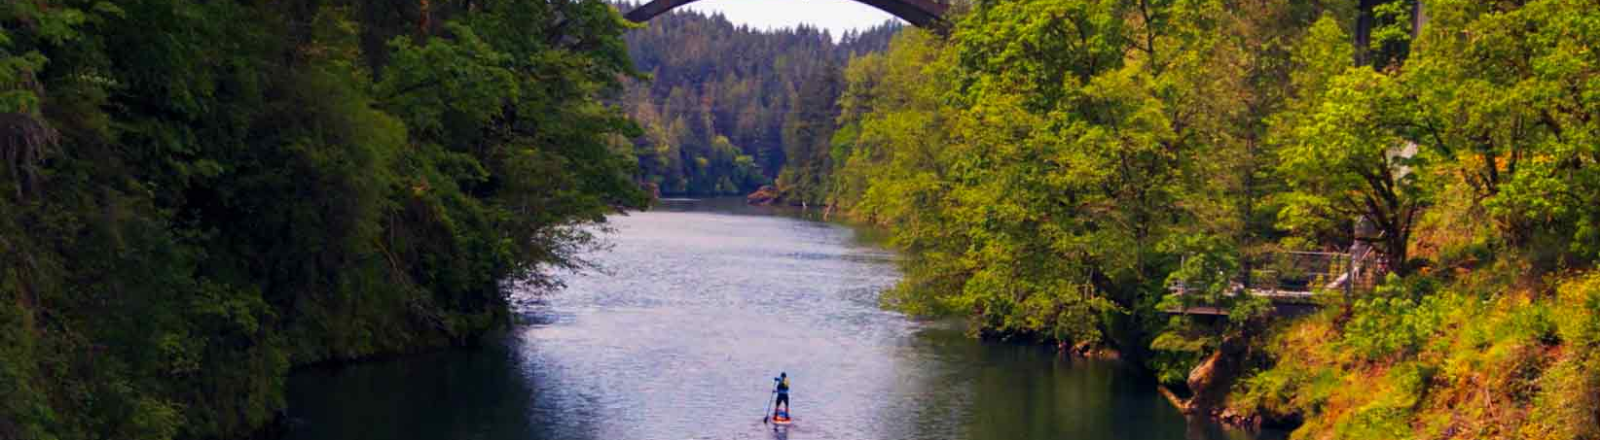 Standup paddleboarder on the Clackamas River Oregons Mount Hood Territory